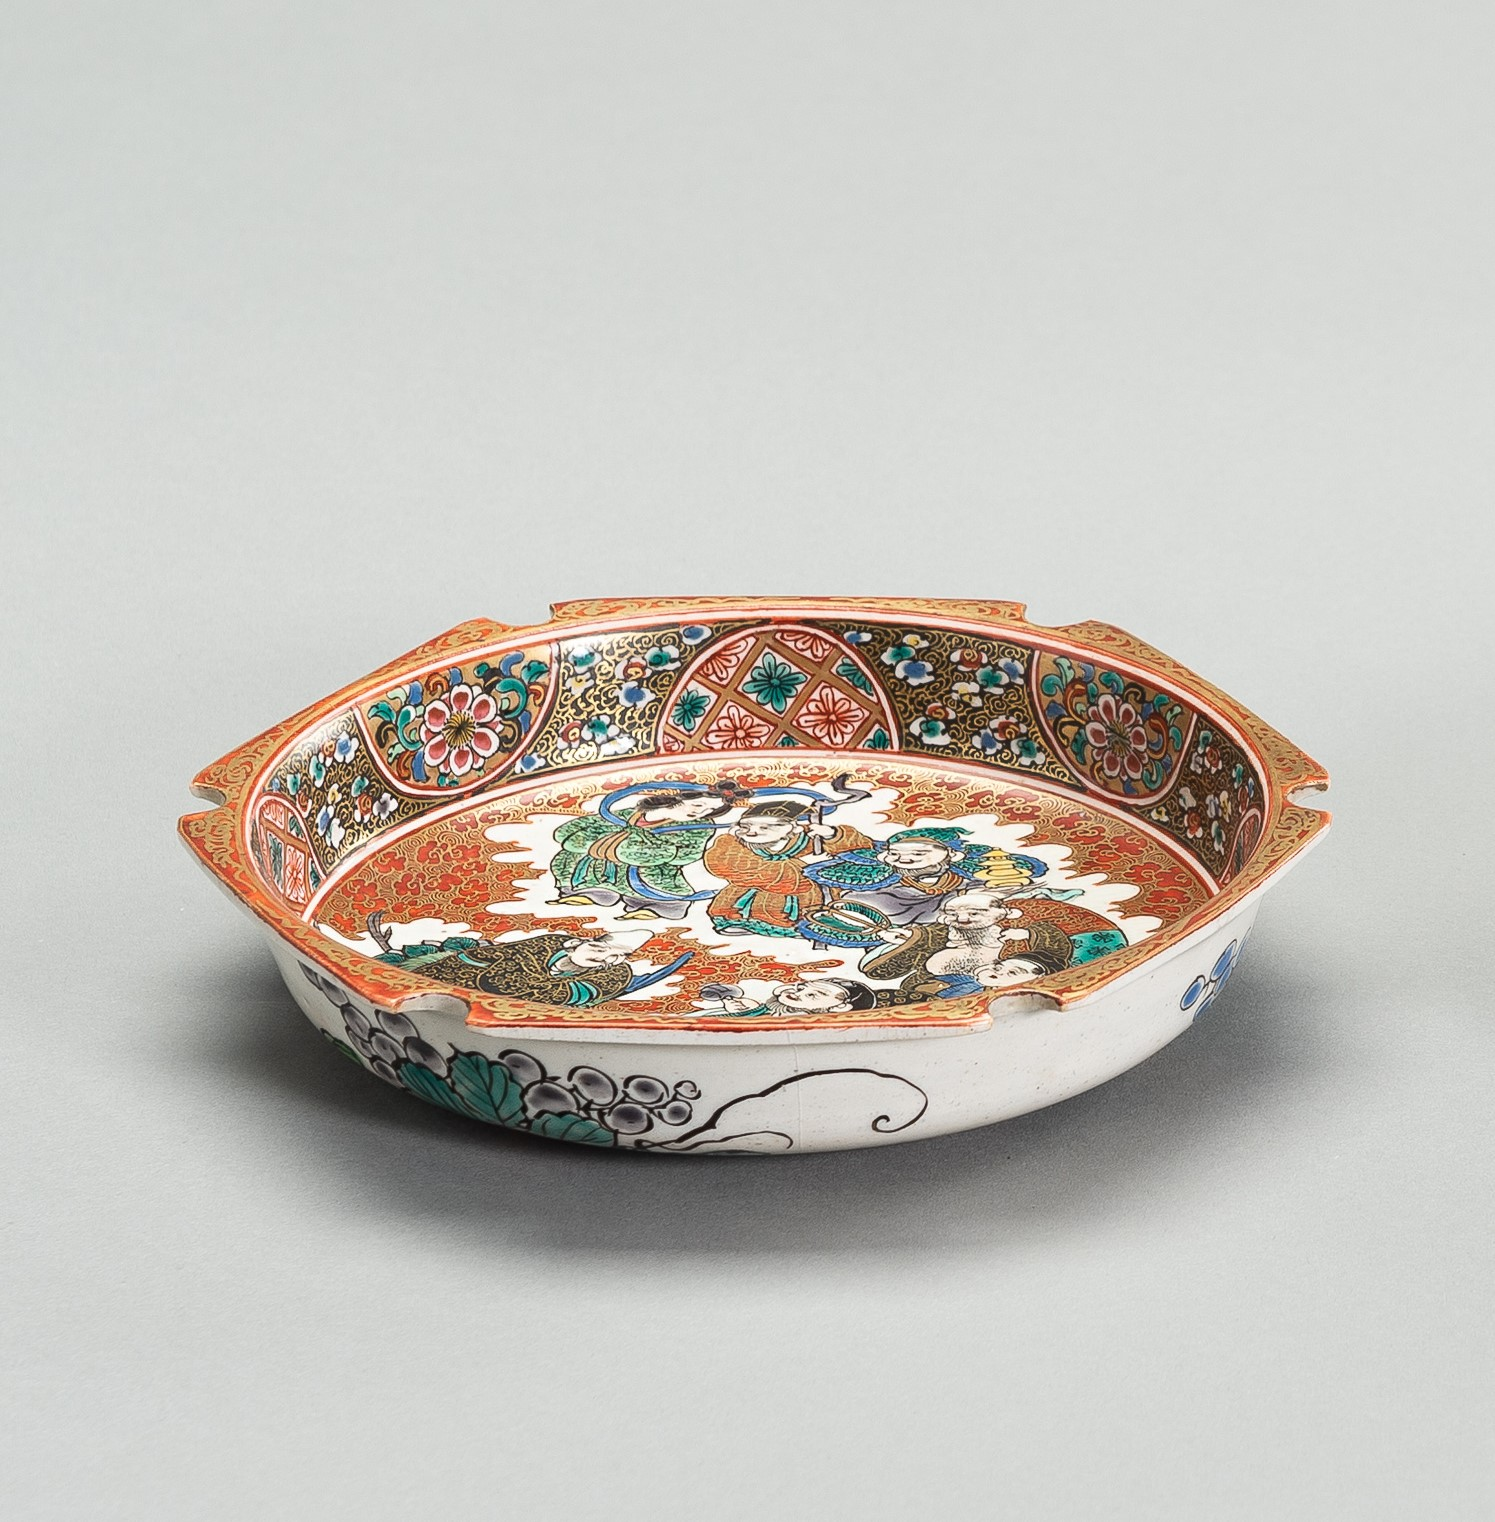 A POLYCHROME ENAMELED PORCLEAIN DISH - Image 2 of 5